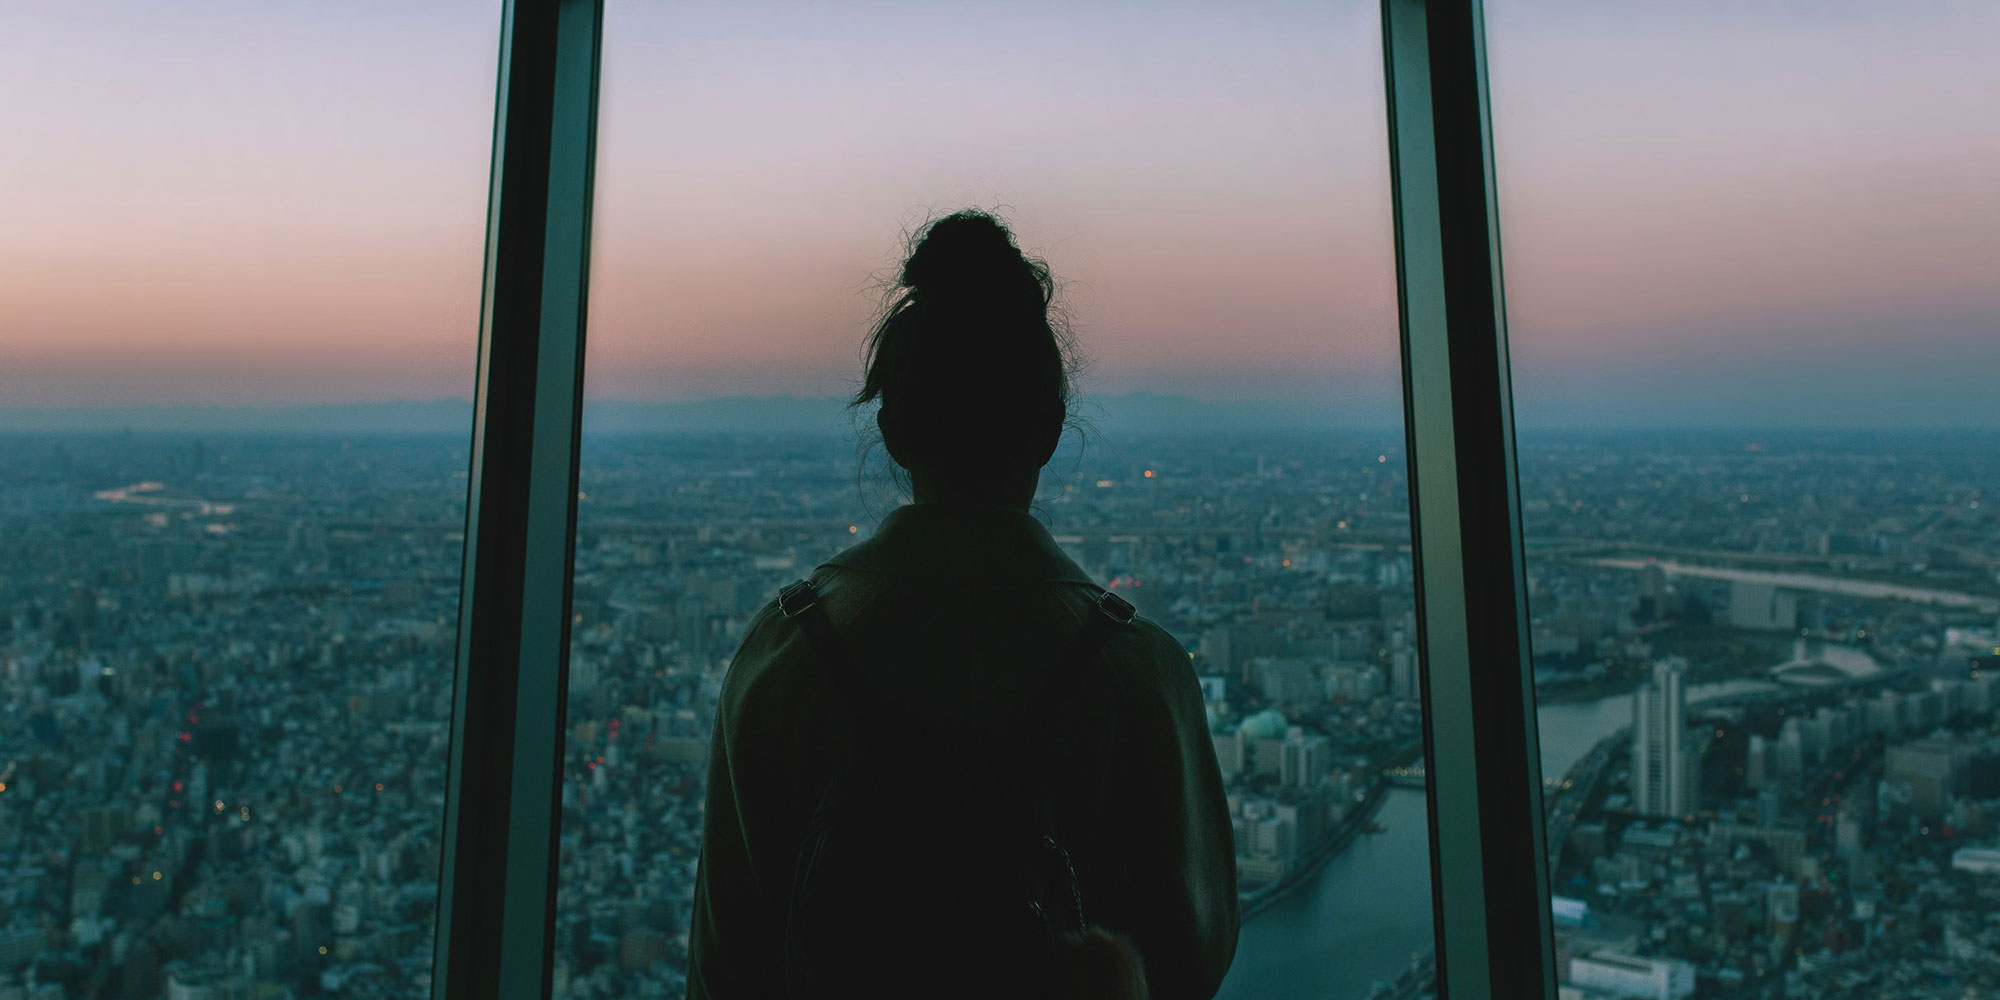 Back view of a person staring out a window